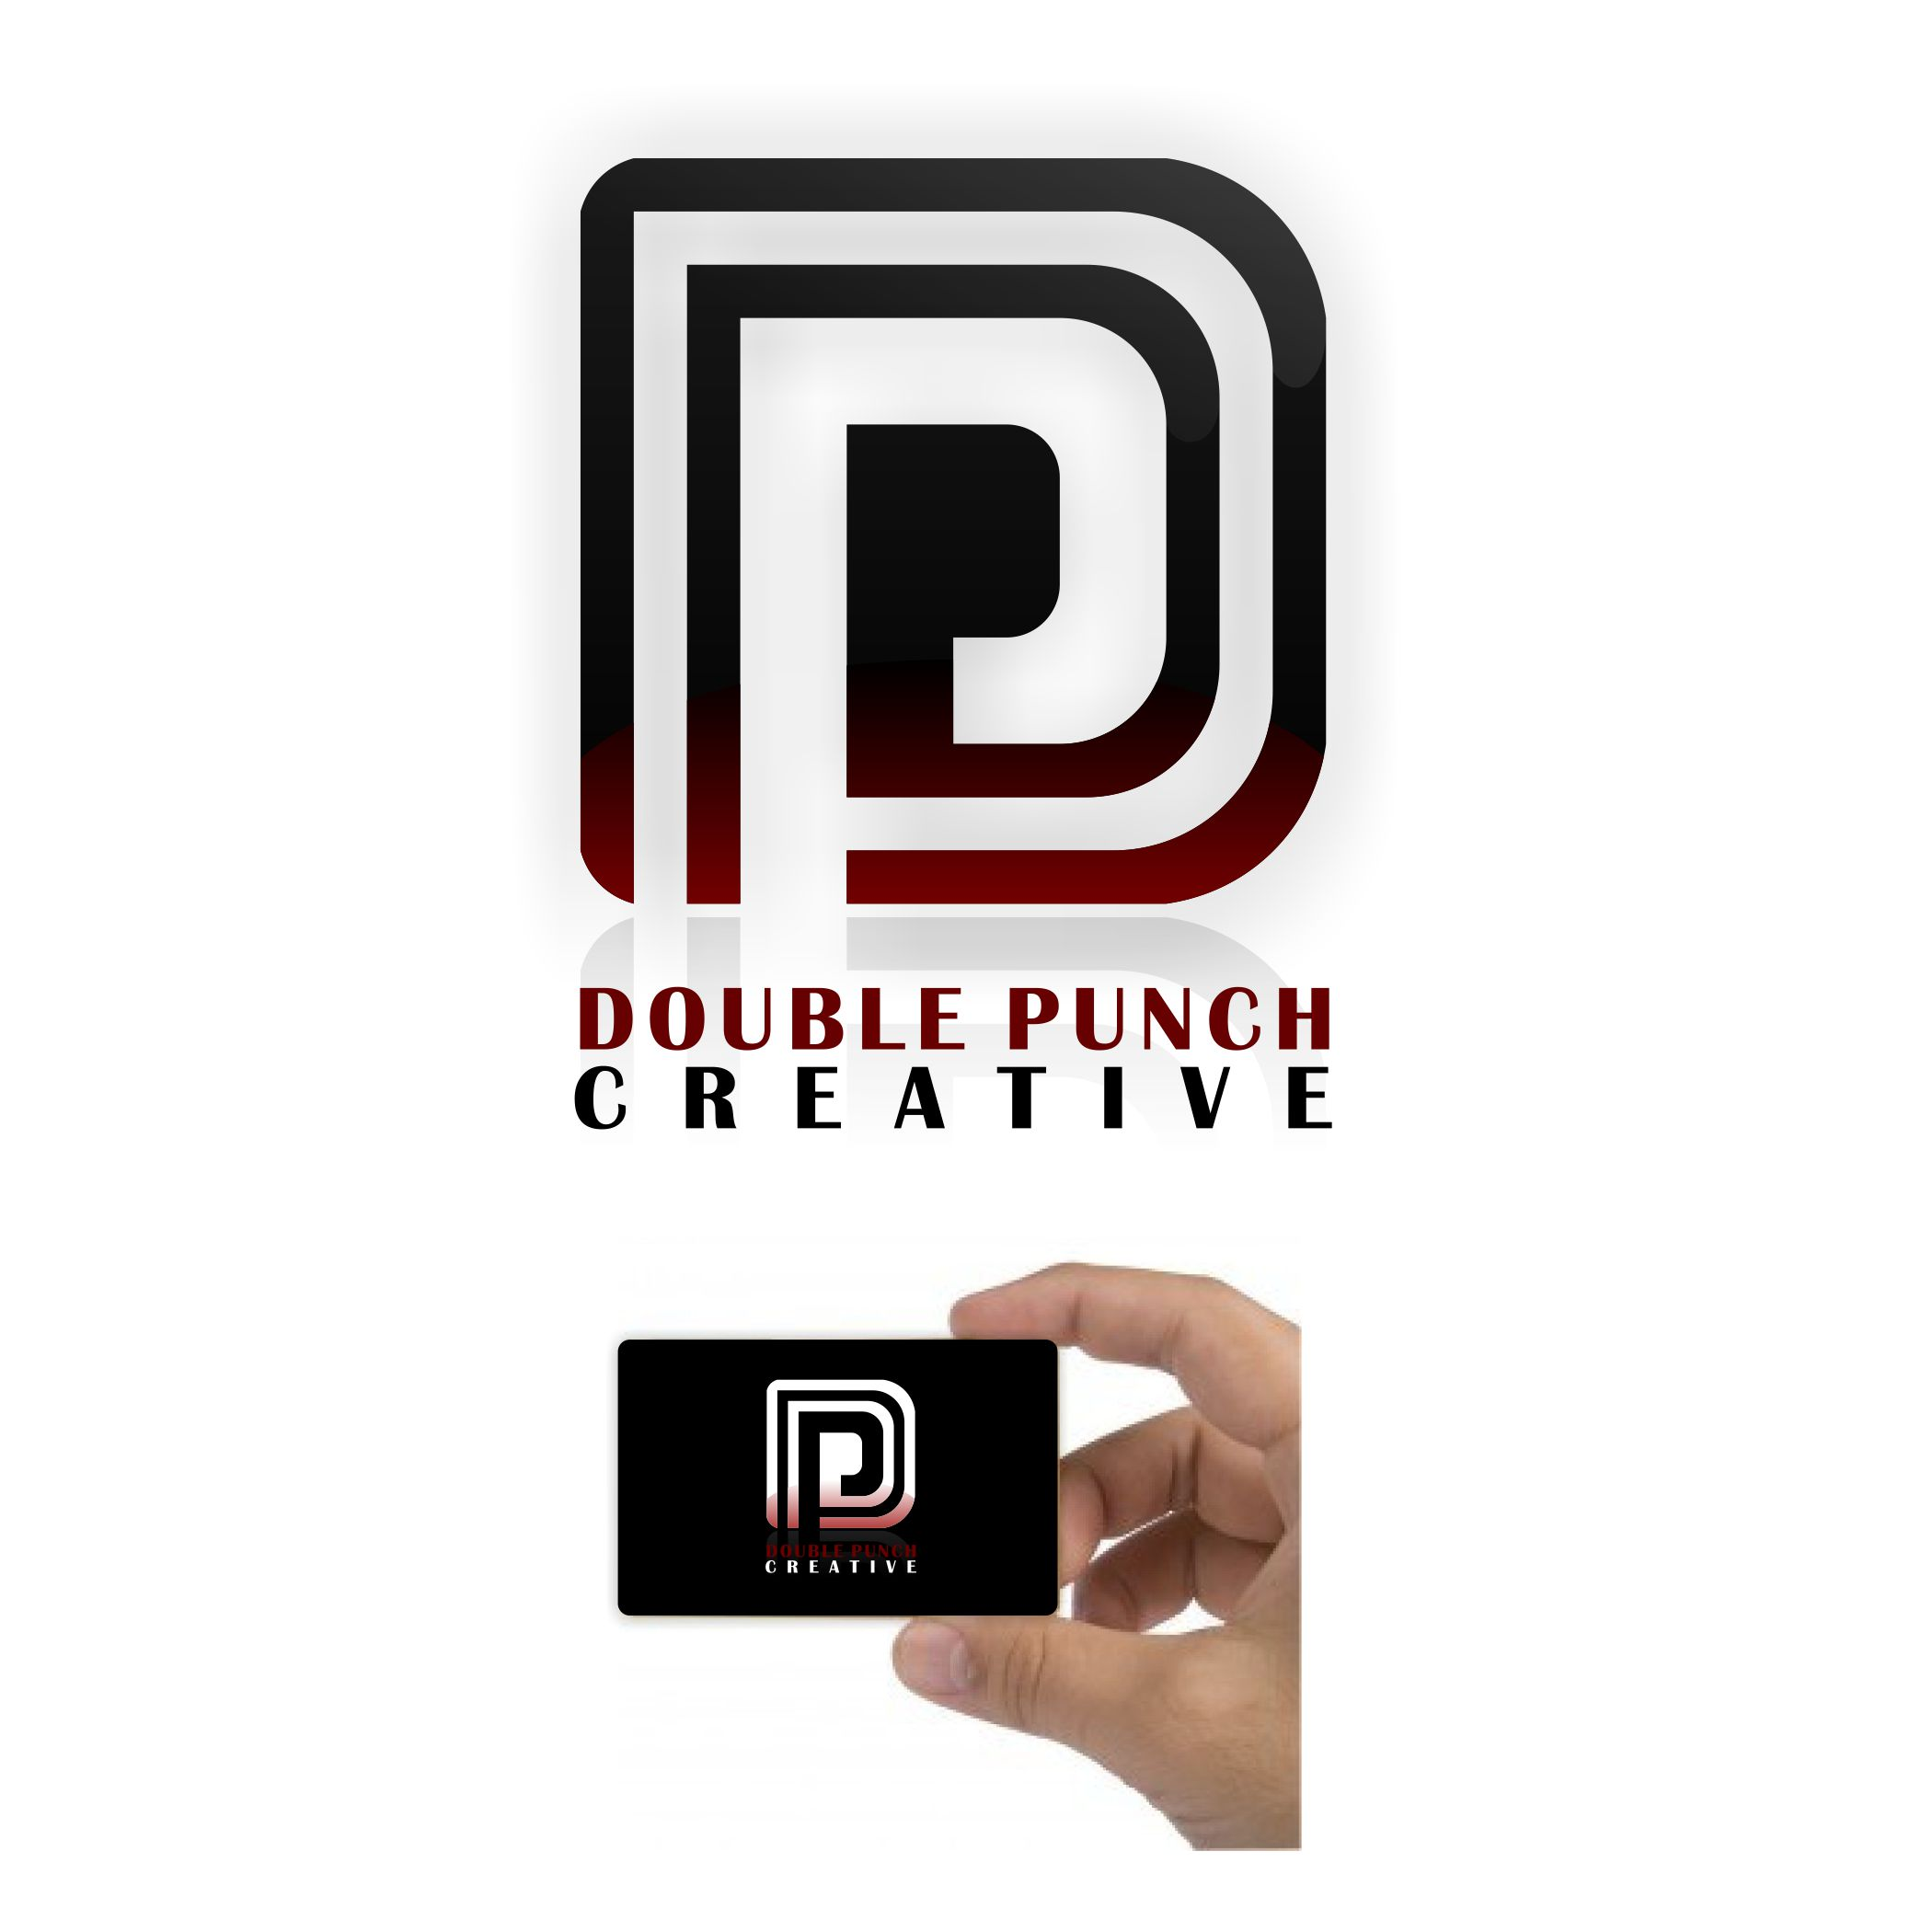 Logo Design by joca - Entry No. 41 in the Logo Design Contest Unique Logo Design Wanted for Double Punch Creative.